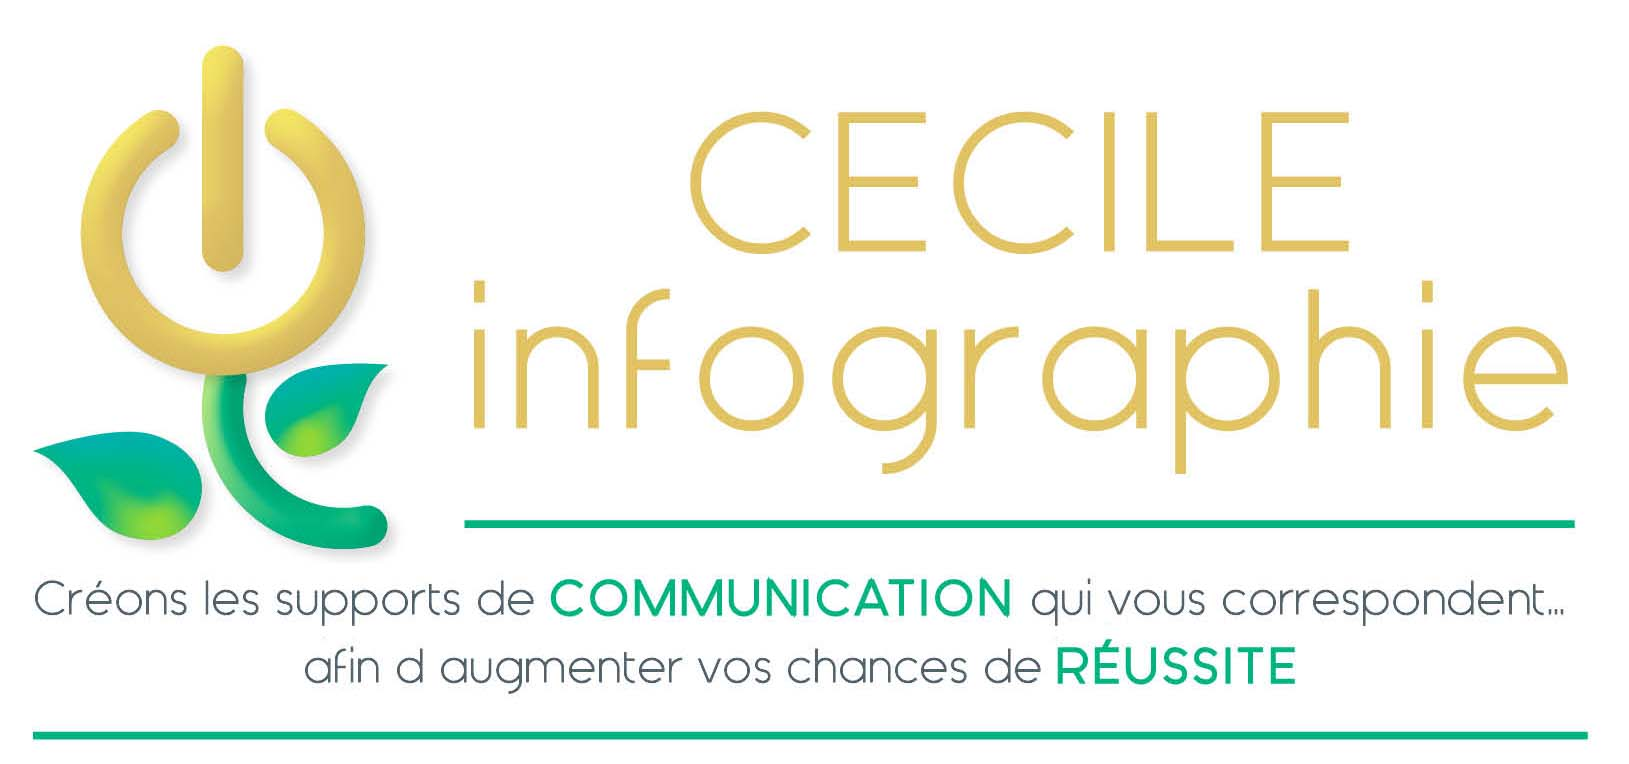 LOGO cecile infographie  TEXTE 05.jpg